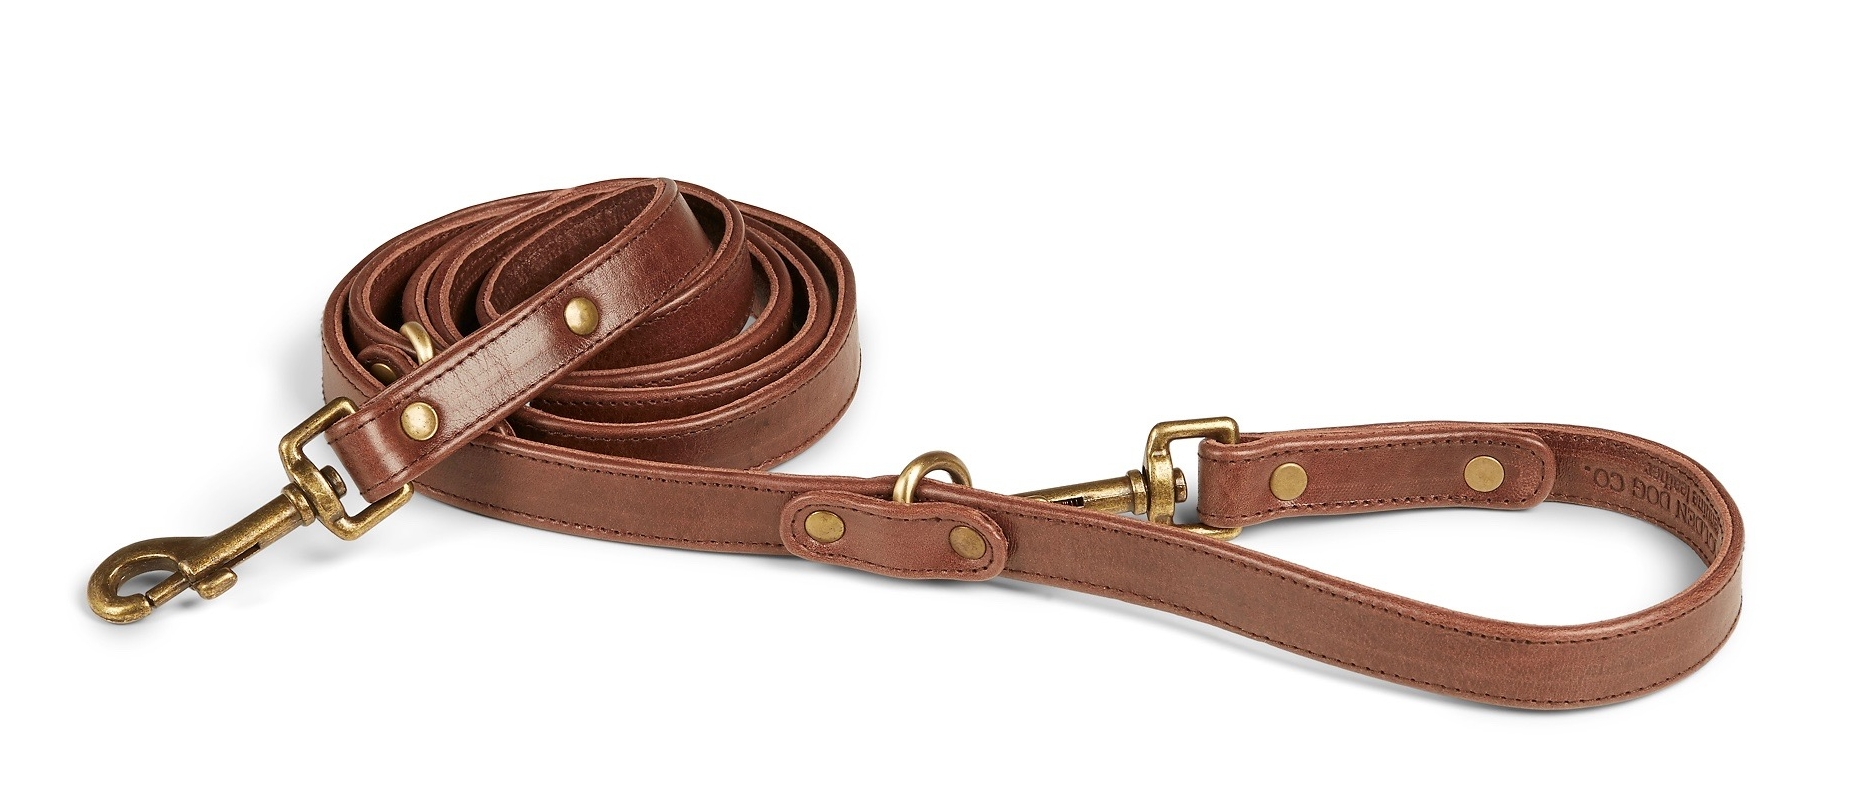 Santa Barbara - Italian Leather Hands Free Dog Leash